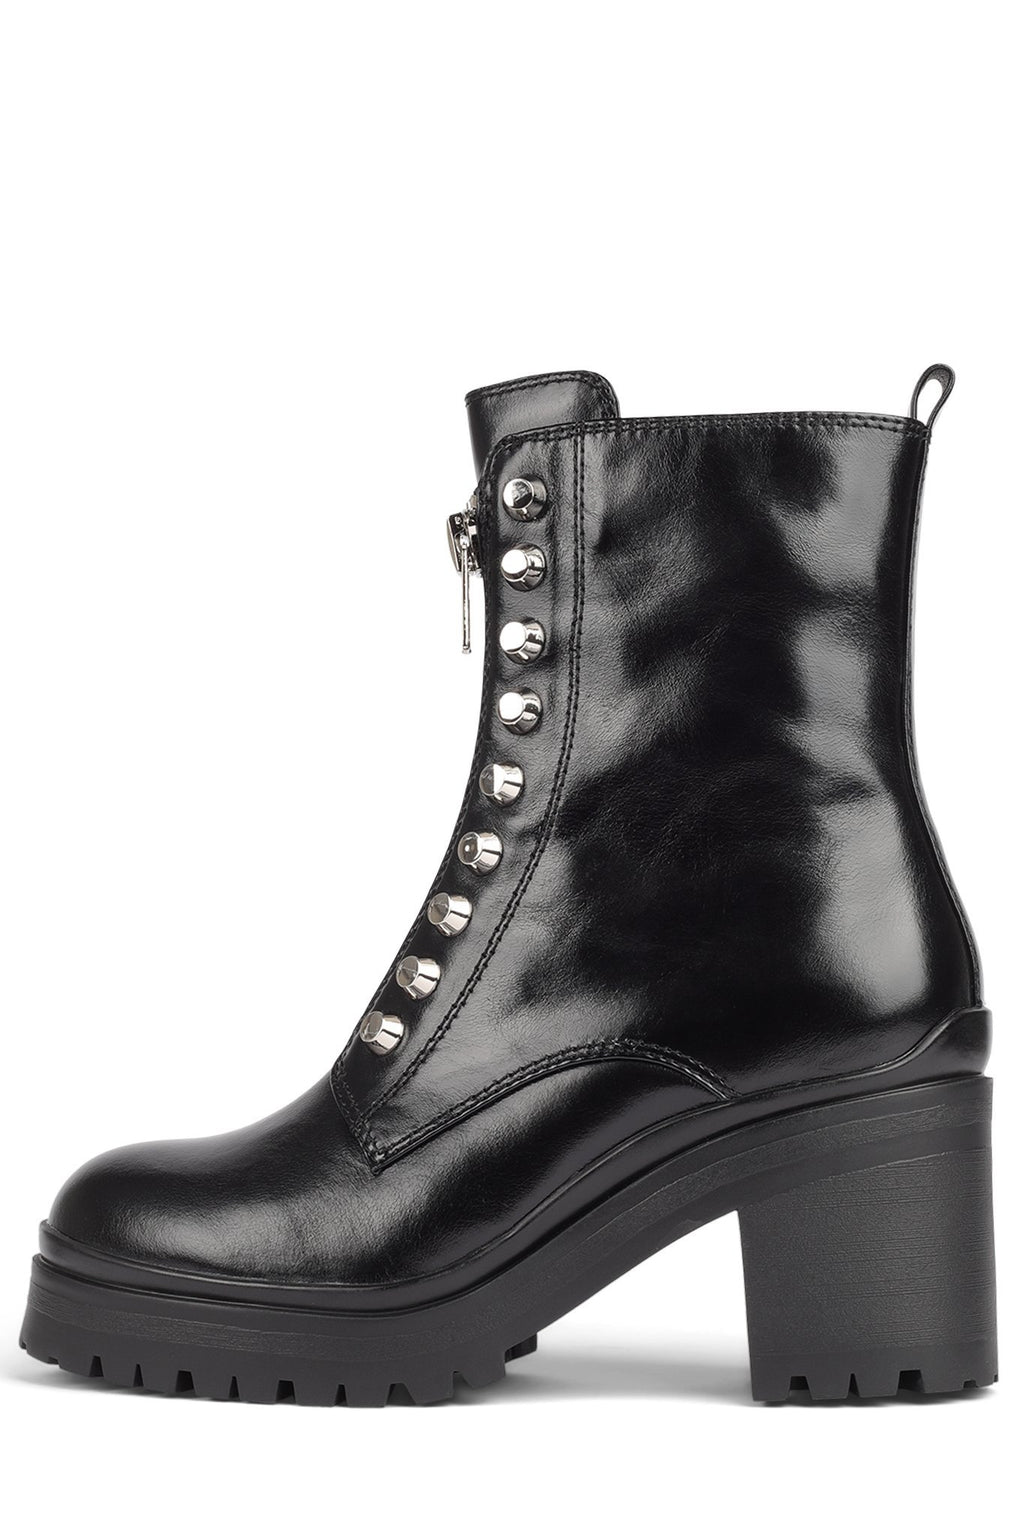 TONETTE-HI Jeffrey Campbell Black 6